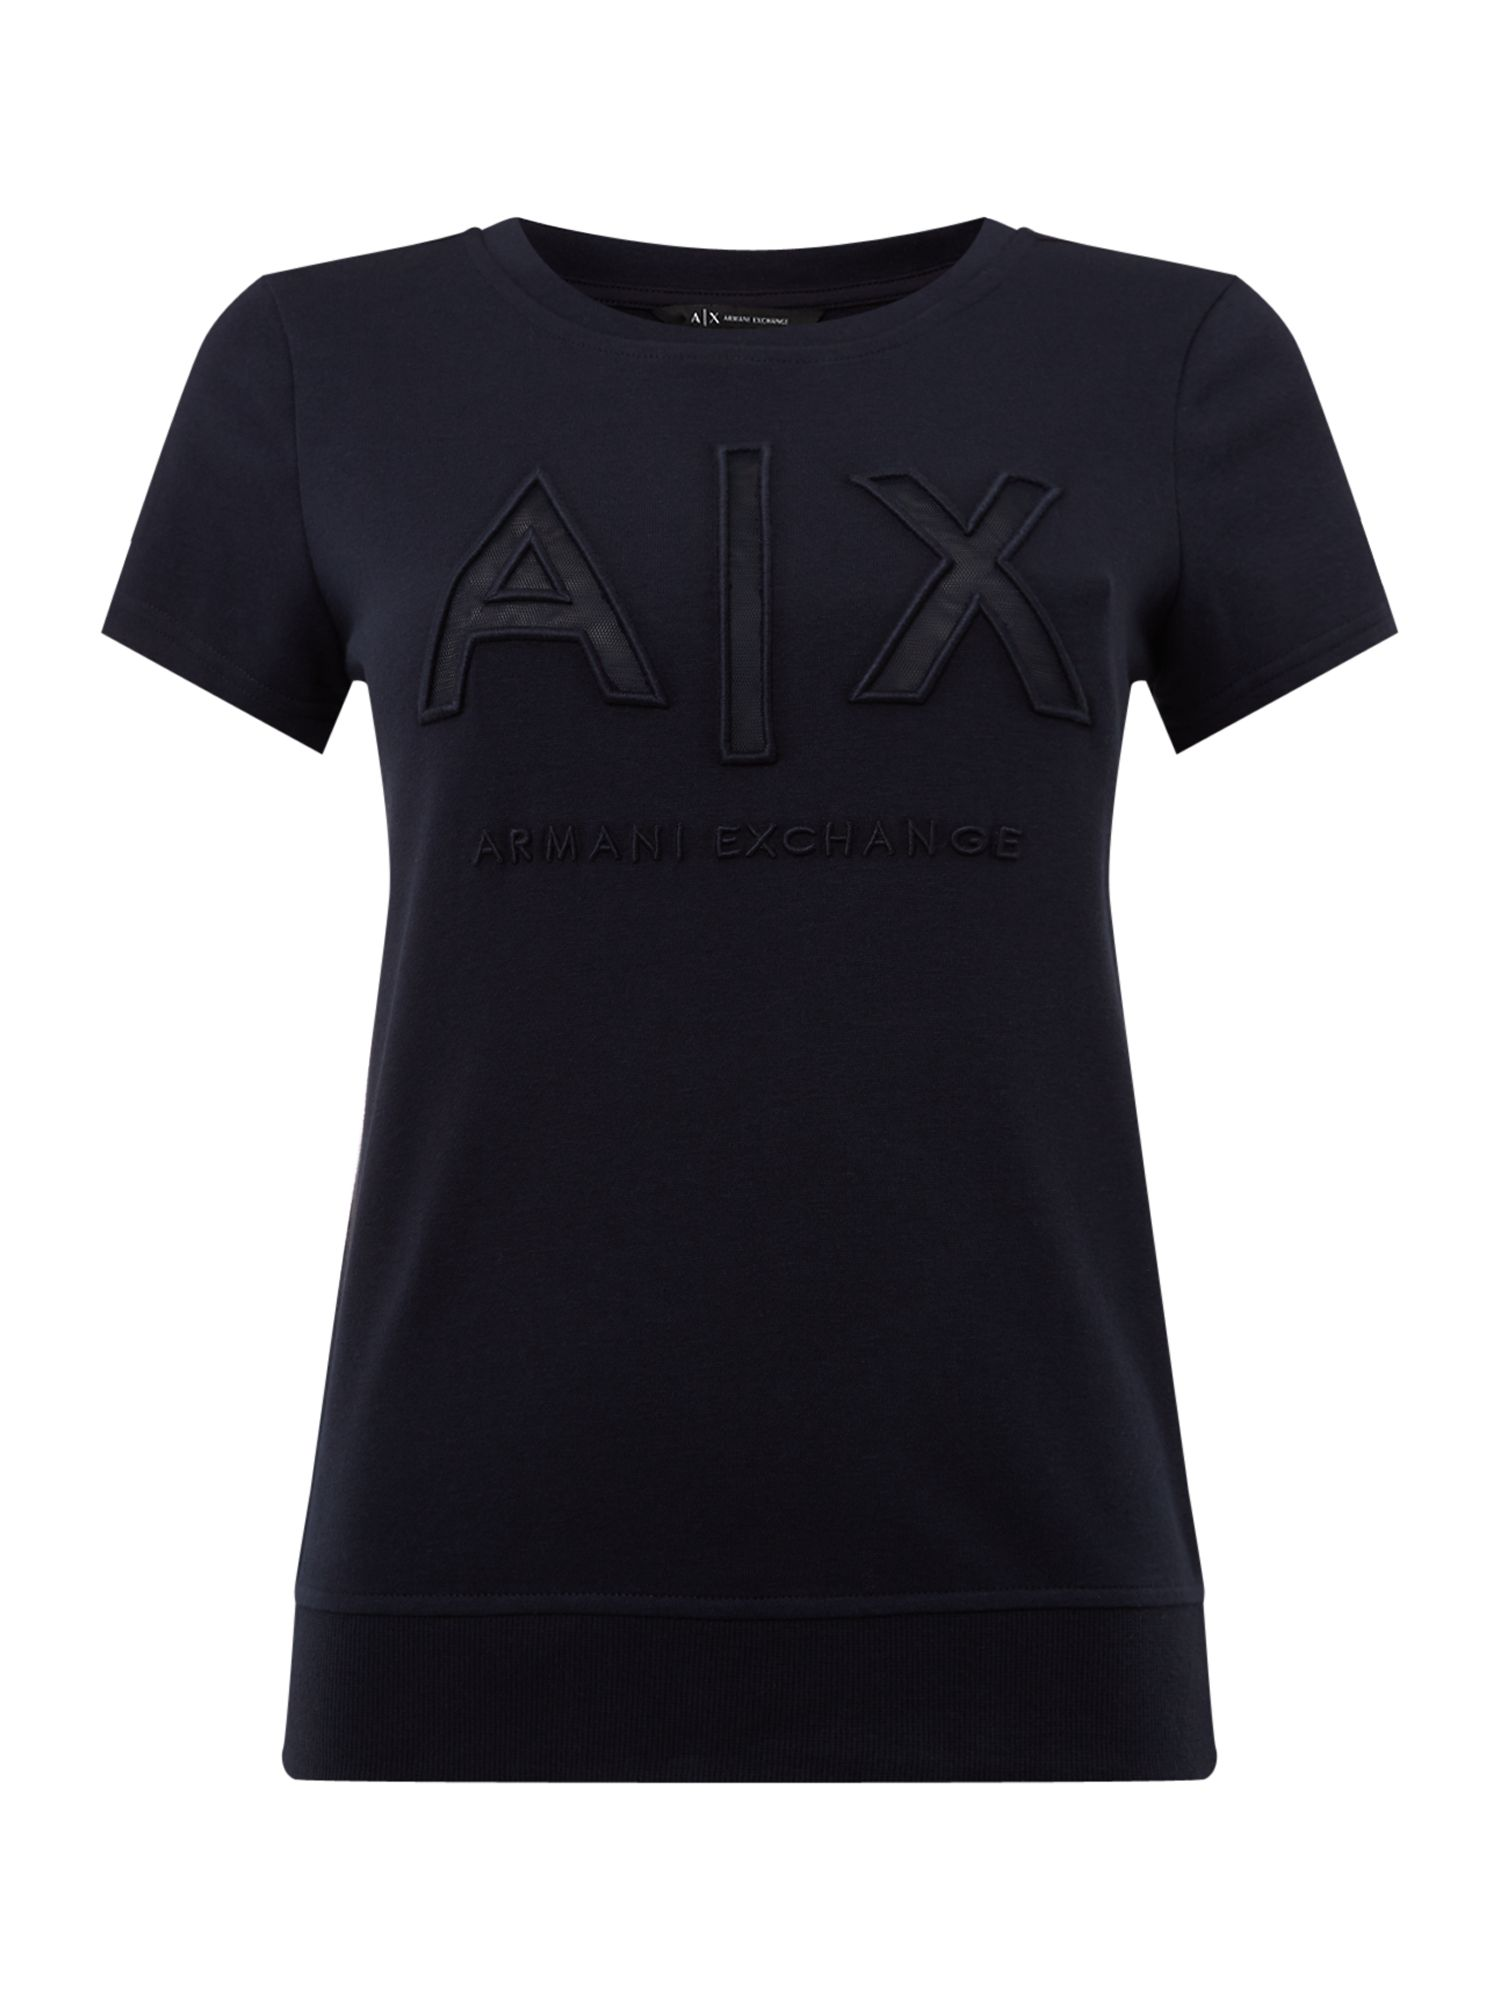 Armani Exchange Short Sleeve Crew Neck Top in Navy, Blue